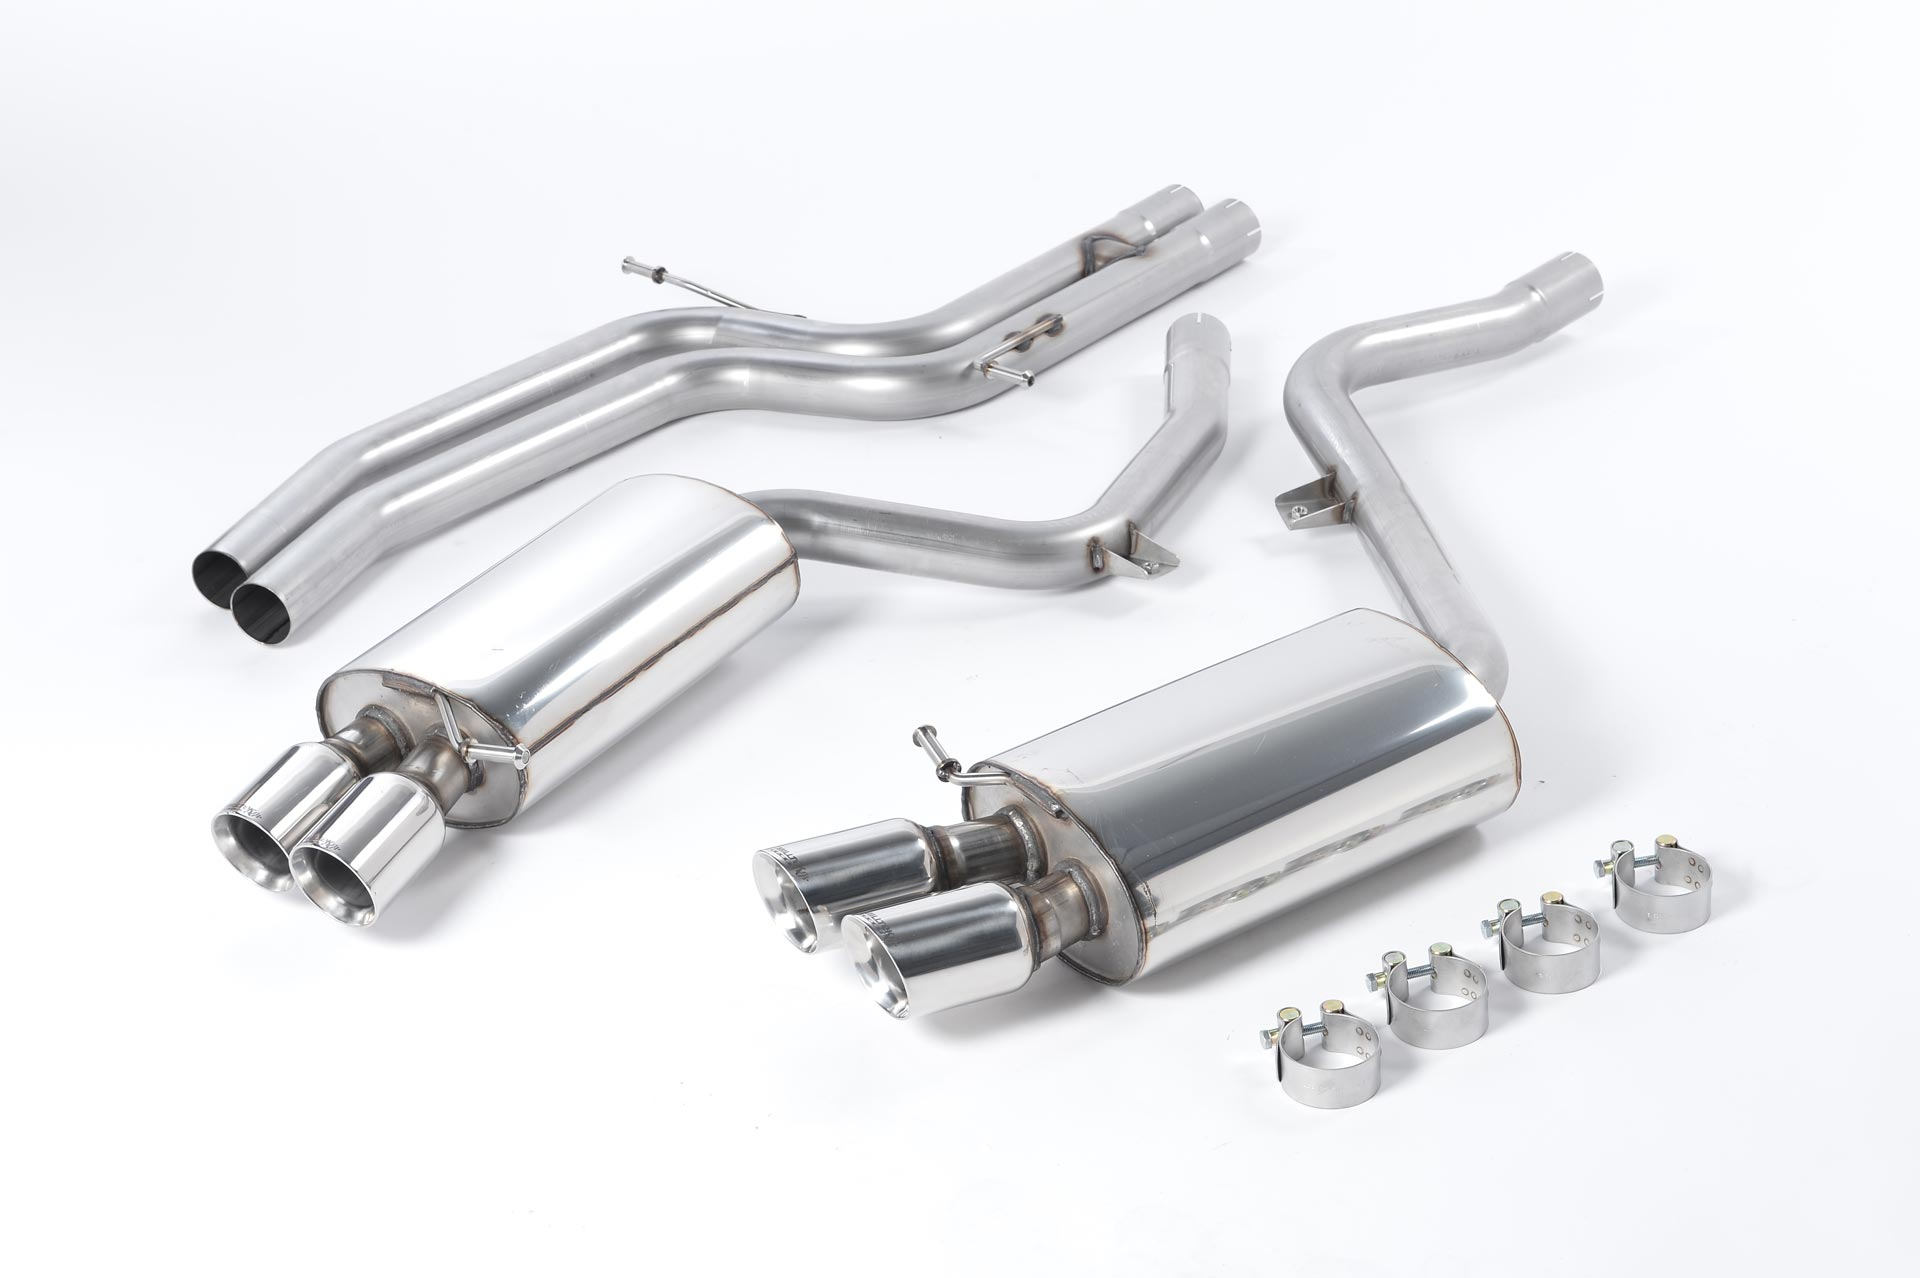 audi s5 4 2 v8 b8 coupe manual and auto milltek exhaust